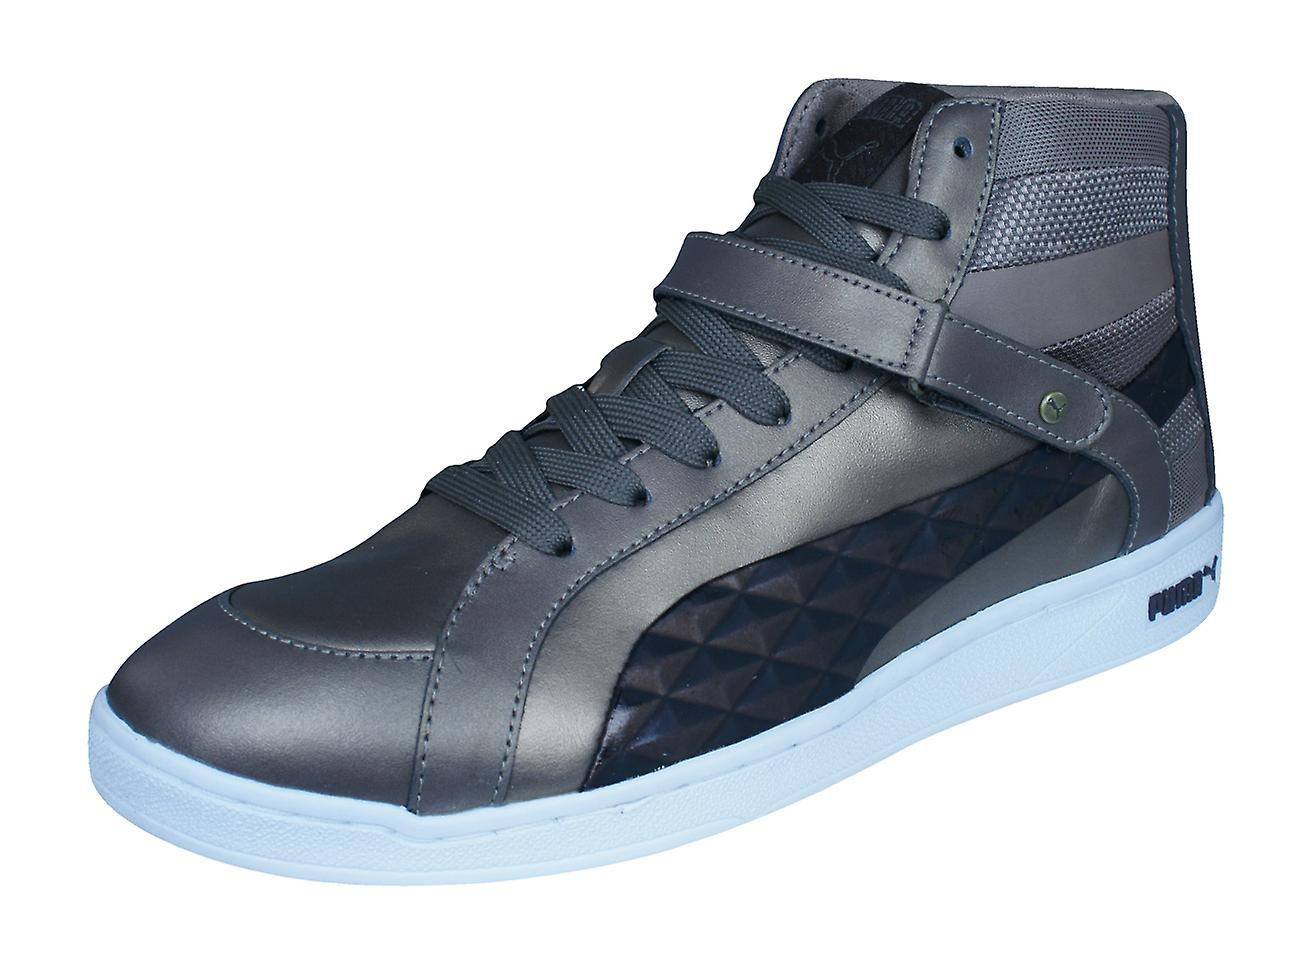 Puma The Key Quilt Quilt Quilt Wo  Leather Mid Top Trainers / Shoes - Bronze 4aec07